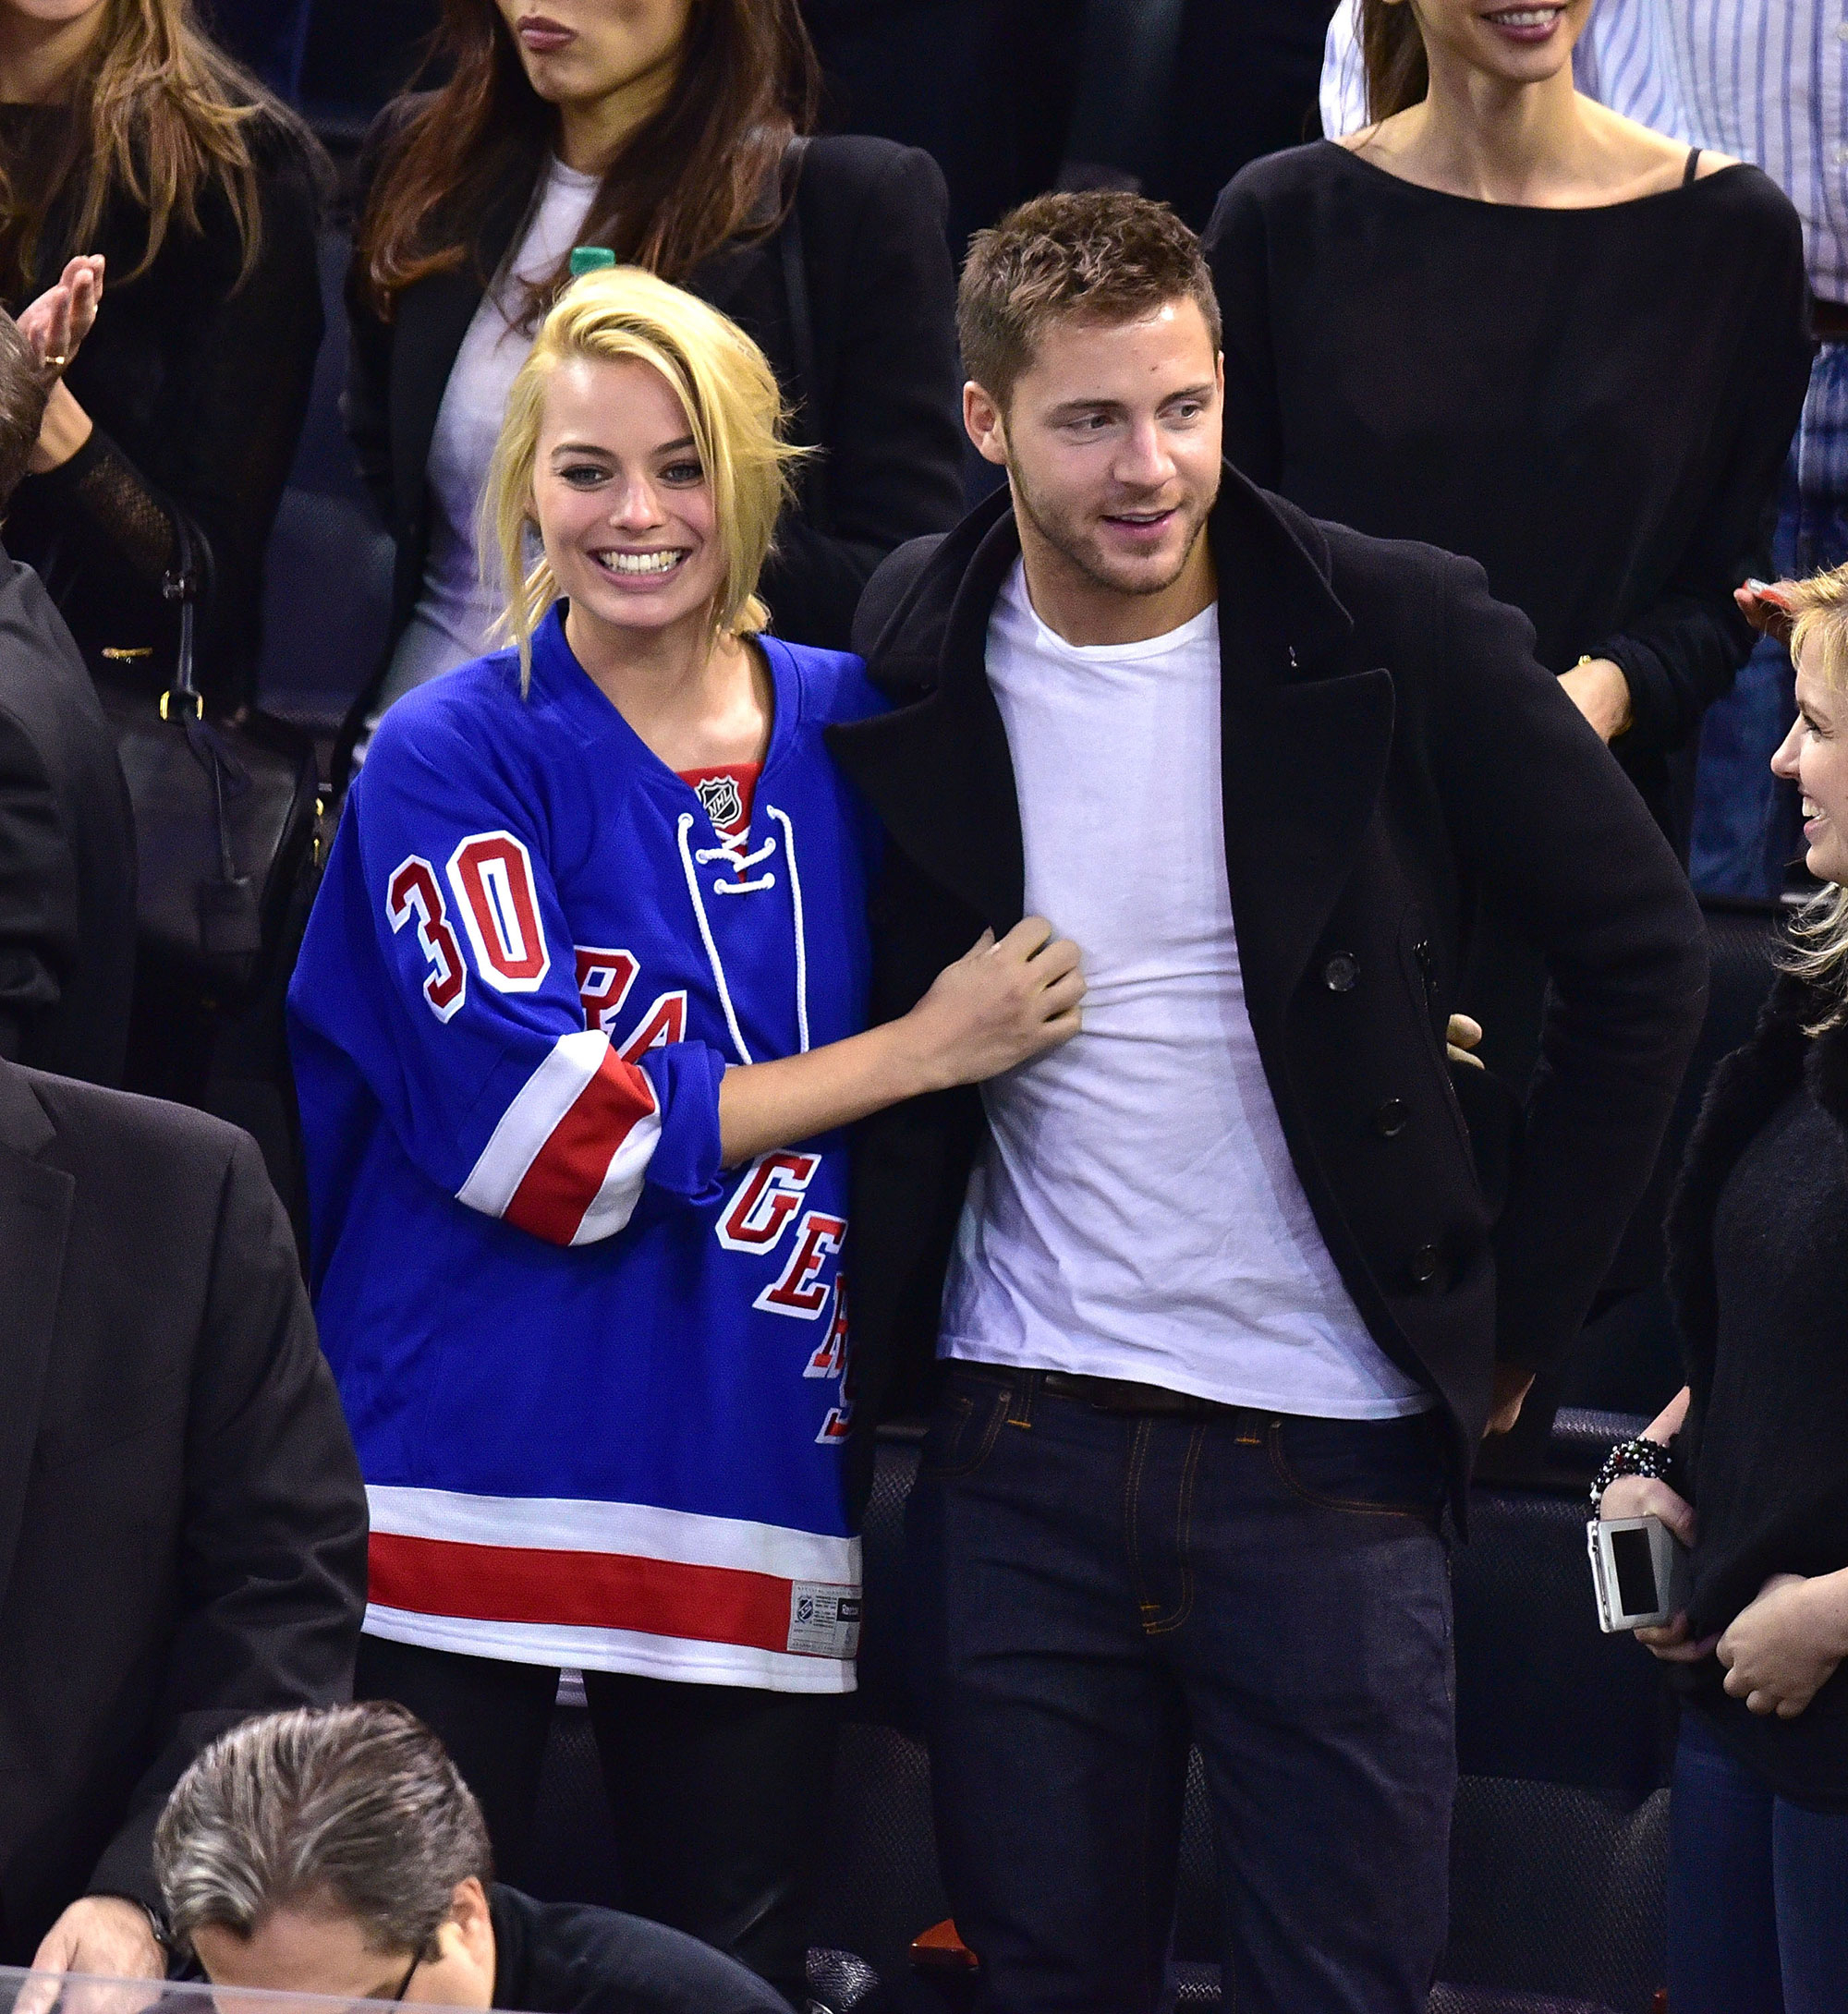 Margot Robbie and Tom Ackerley attend a New York Rangers Game in 2015